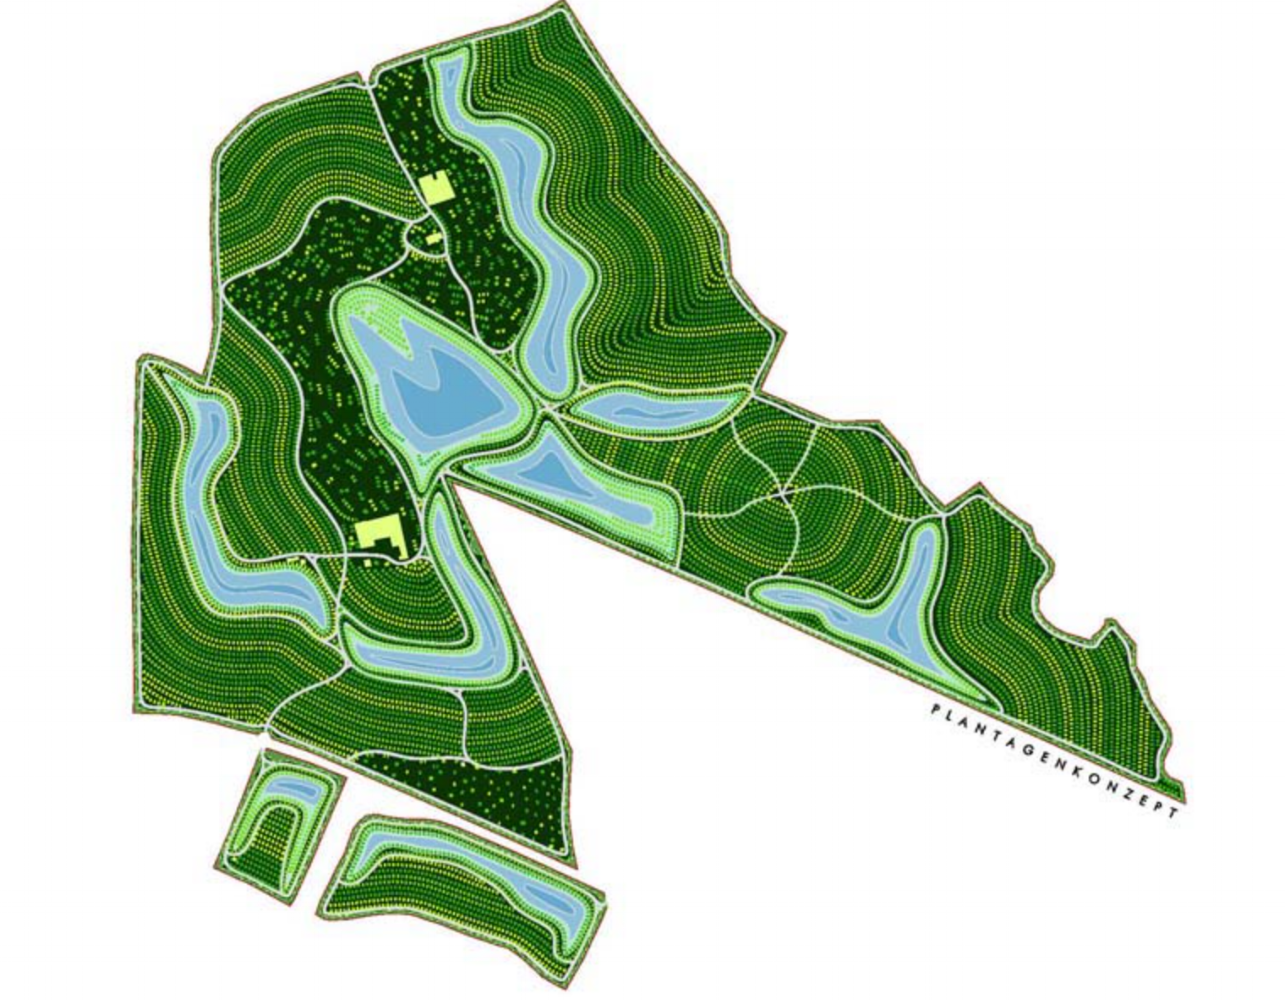 map_orchard design Spain.png